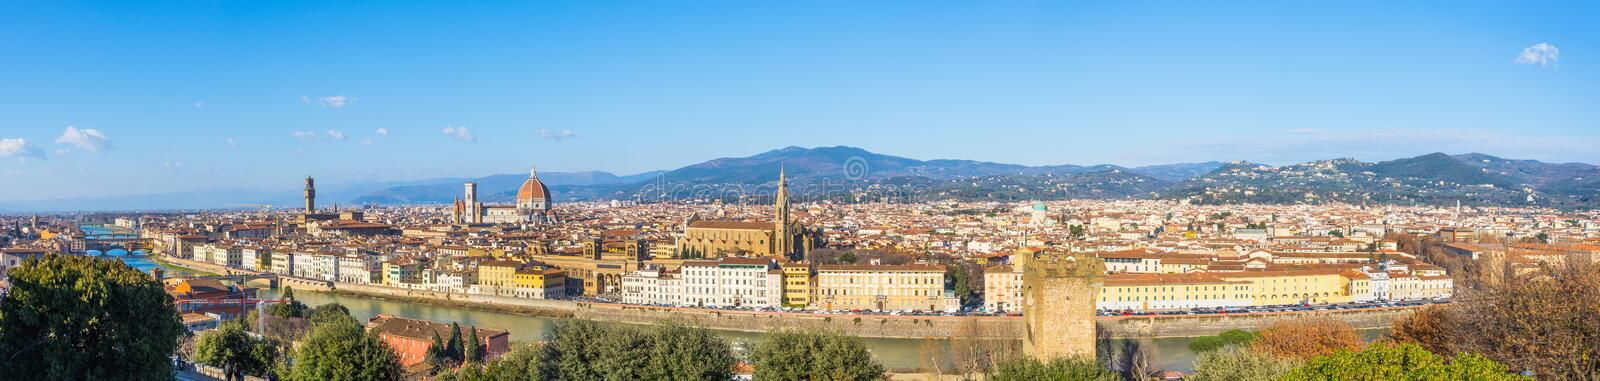 Florence Italy bij zonnig dagcityscape lucht breed meningspanorama royalty-vrije stock foto's